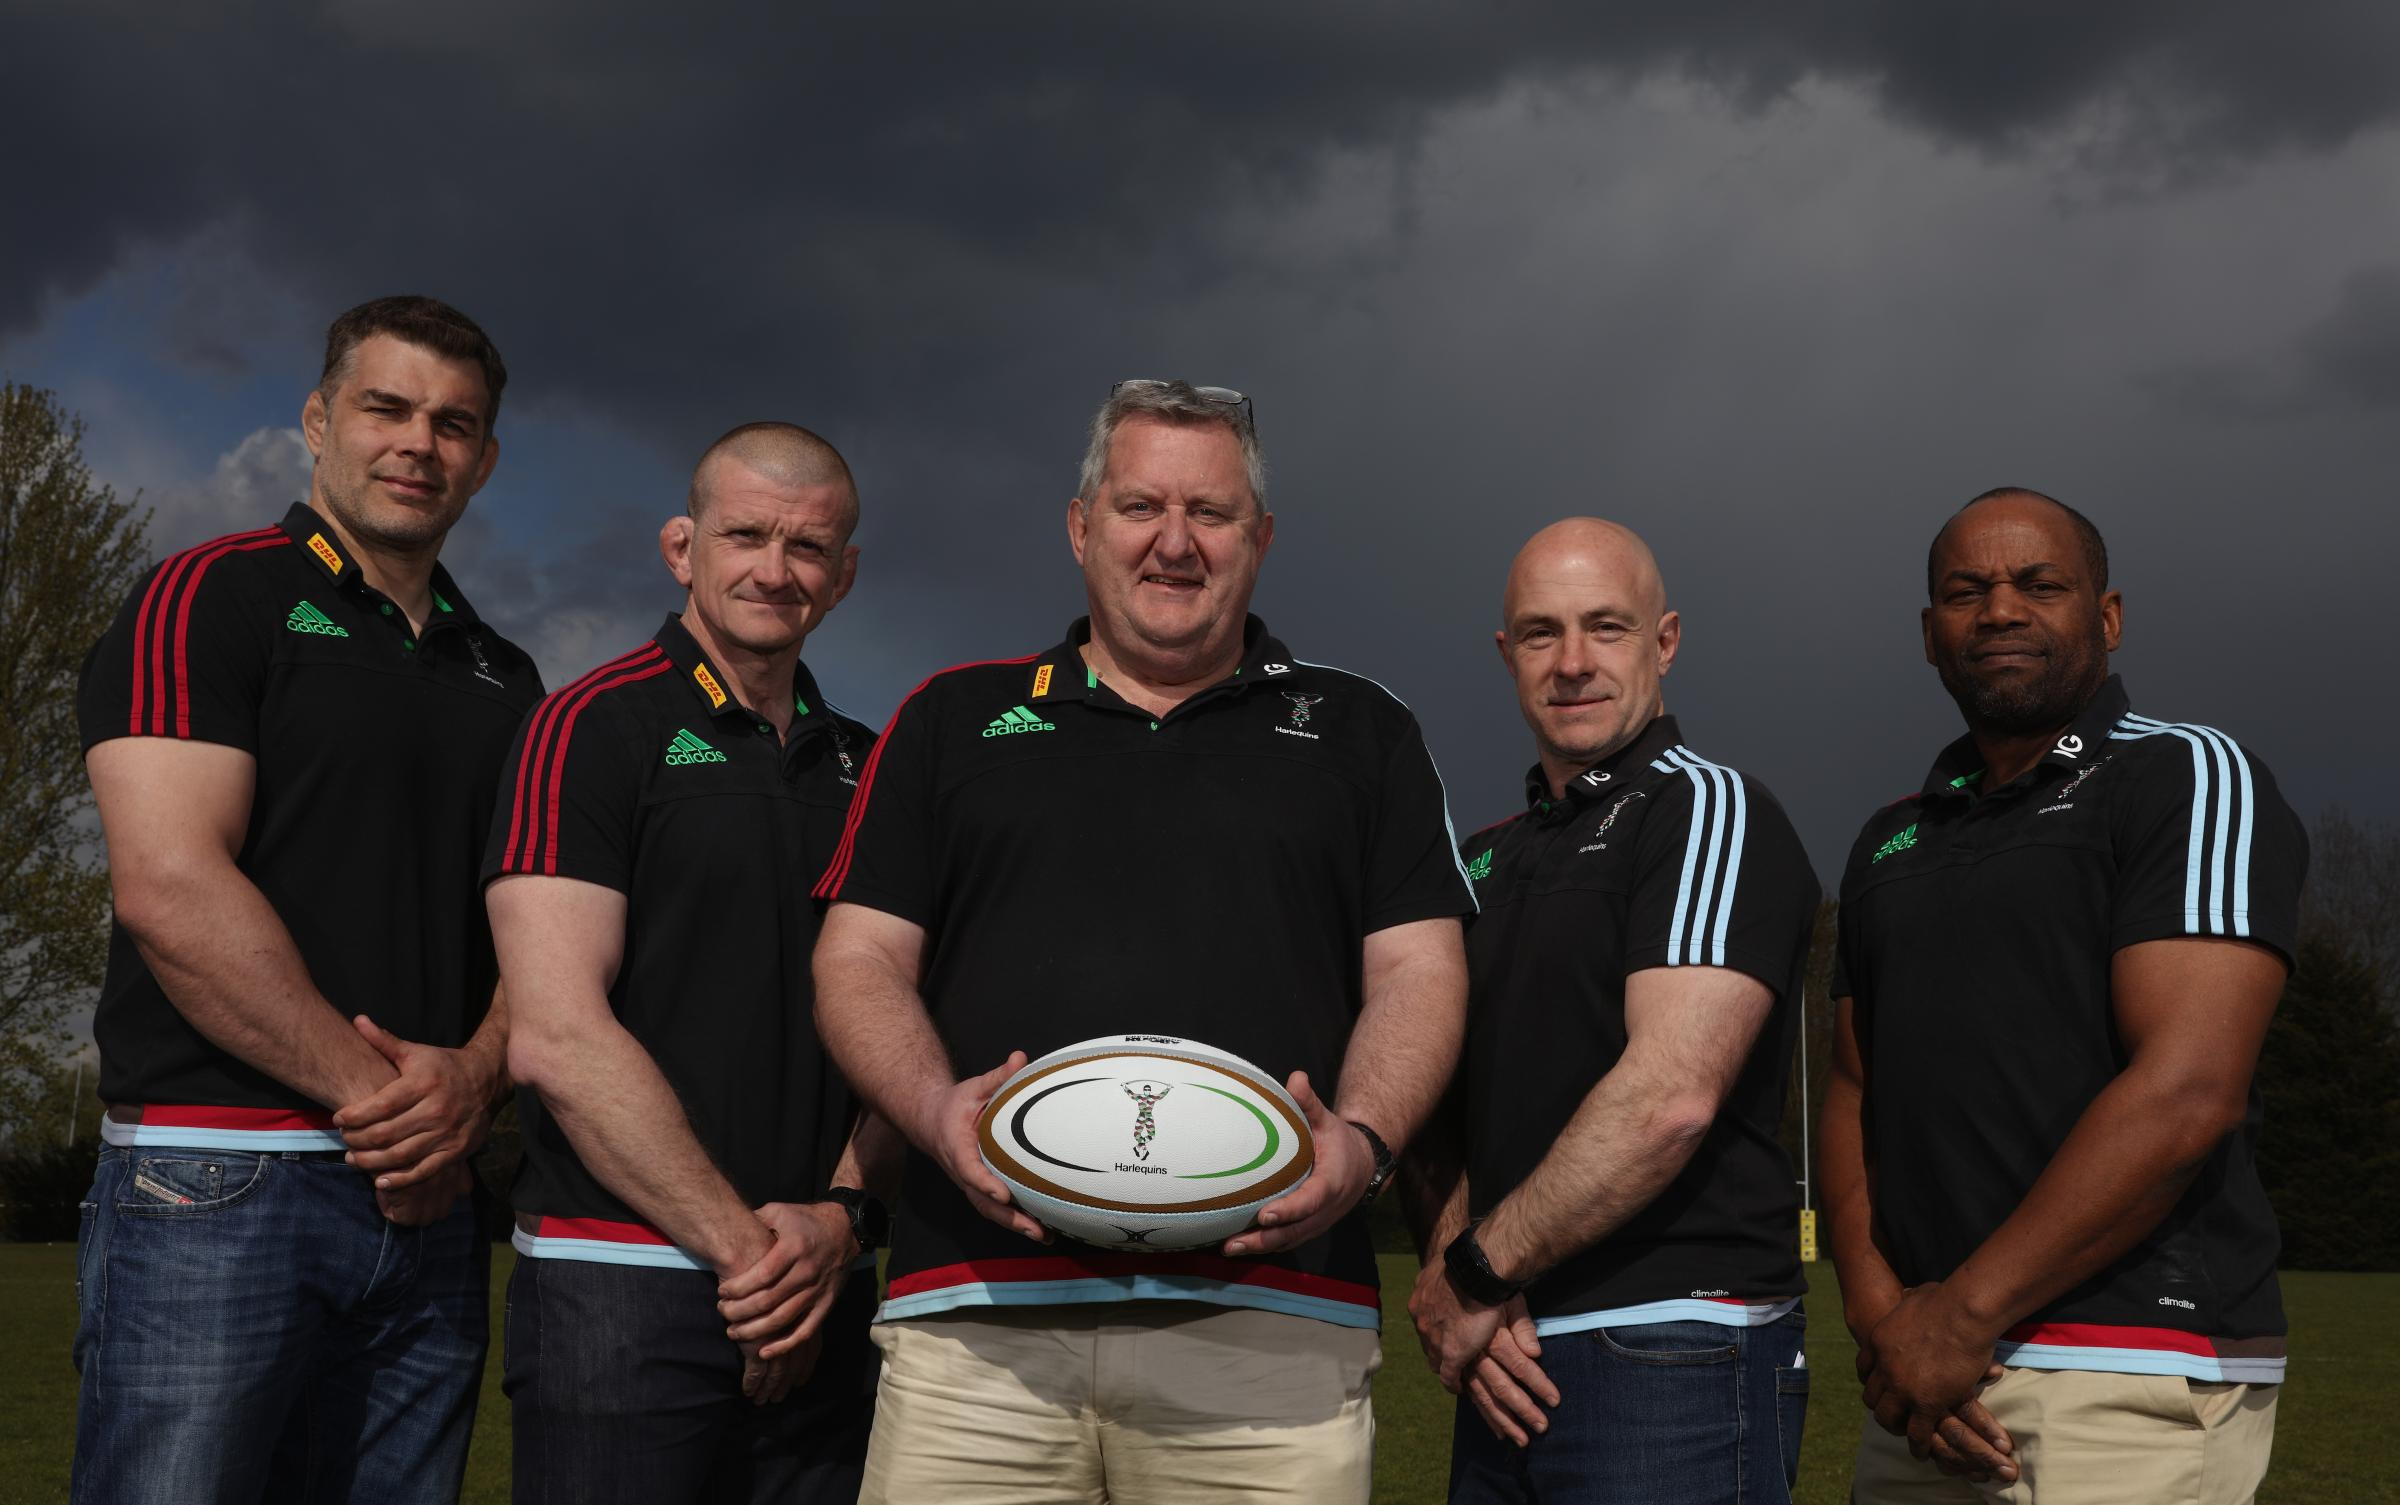 Enthusiastic: Harlequins director of rugby John Kingston, centre, and his team are keen for the European Rugby Challenge Cup this season